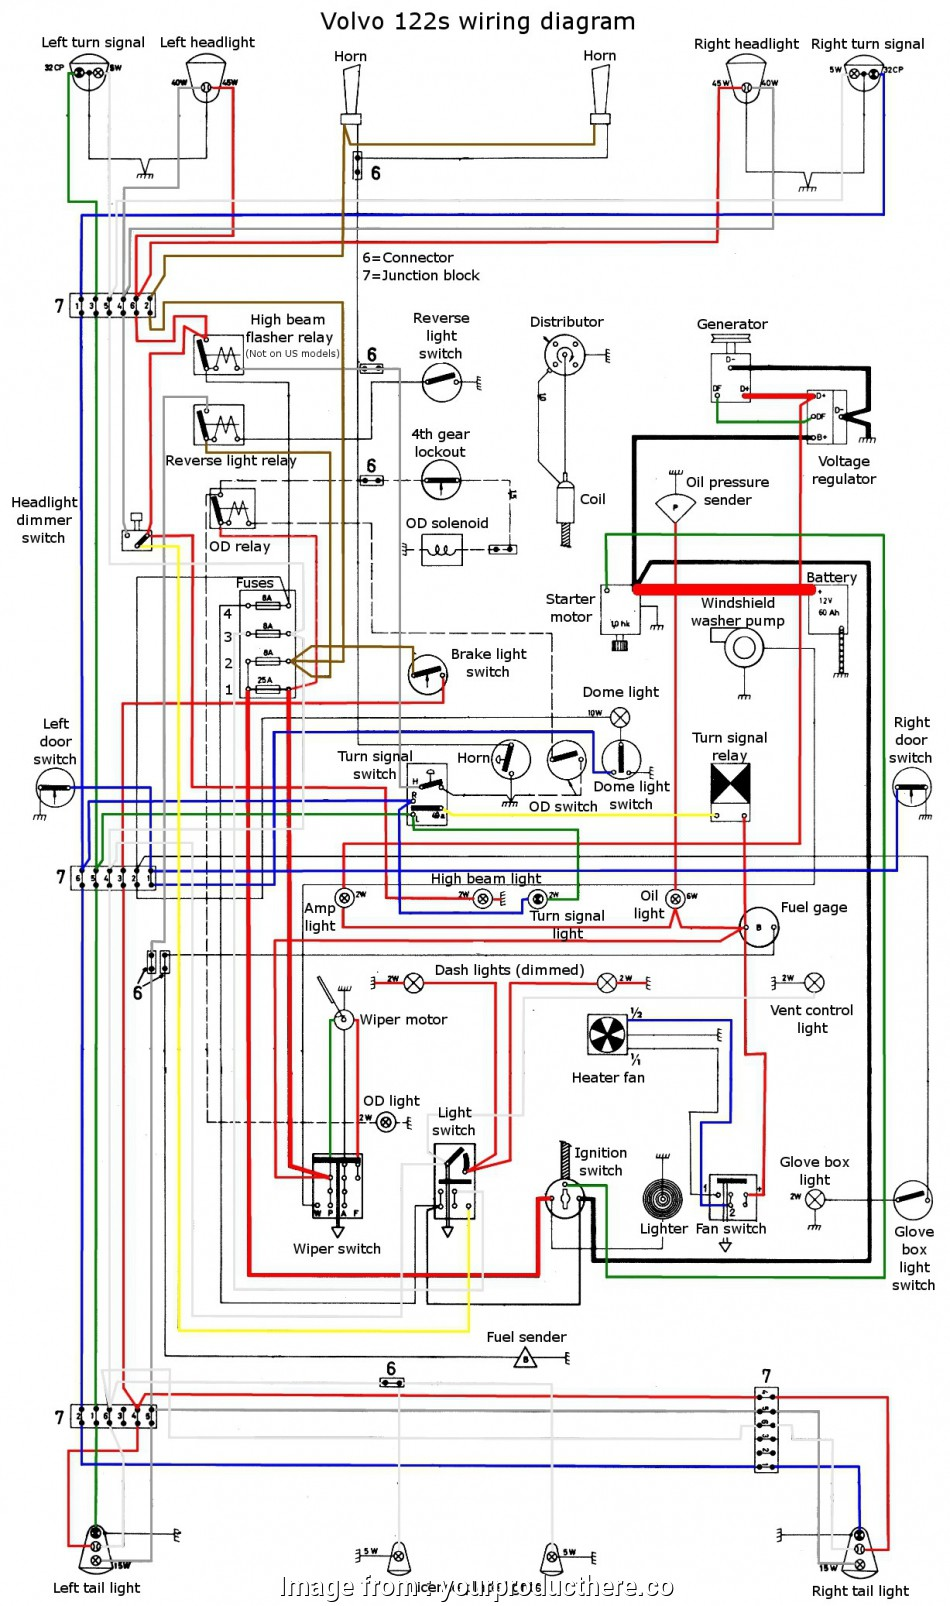 Basic Electrical Wiring In A House Professional House Electrical Wiring Diagram Uk Fresh Basic